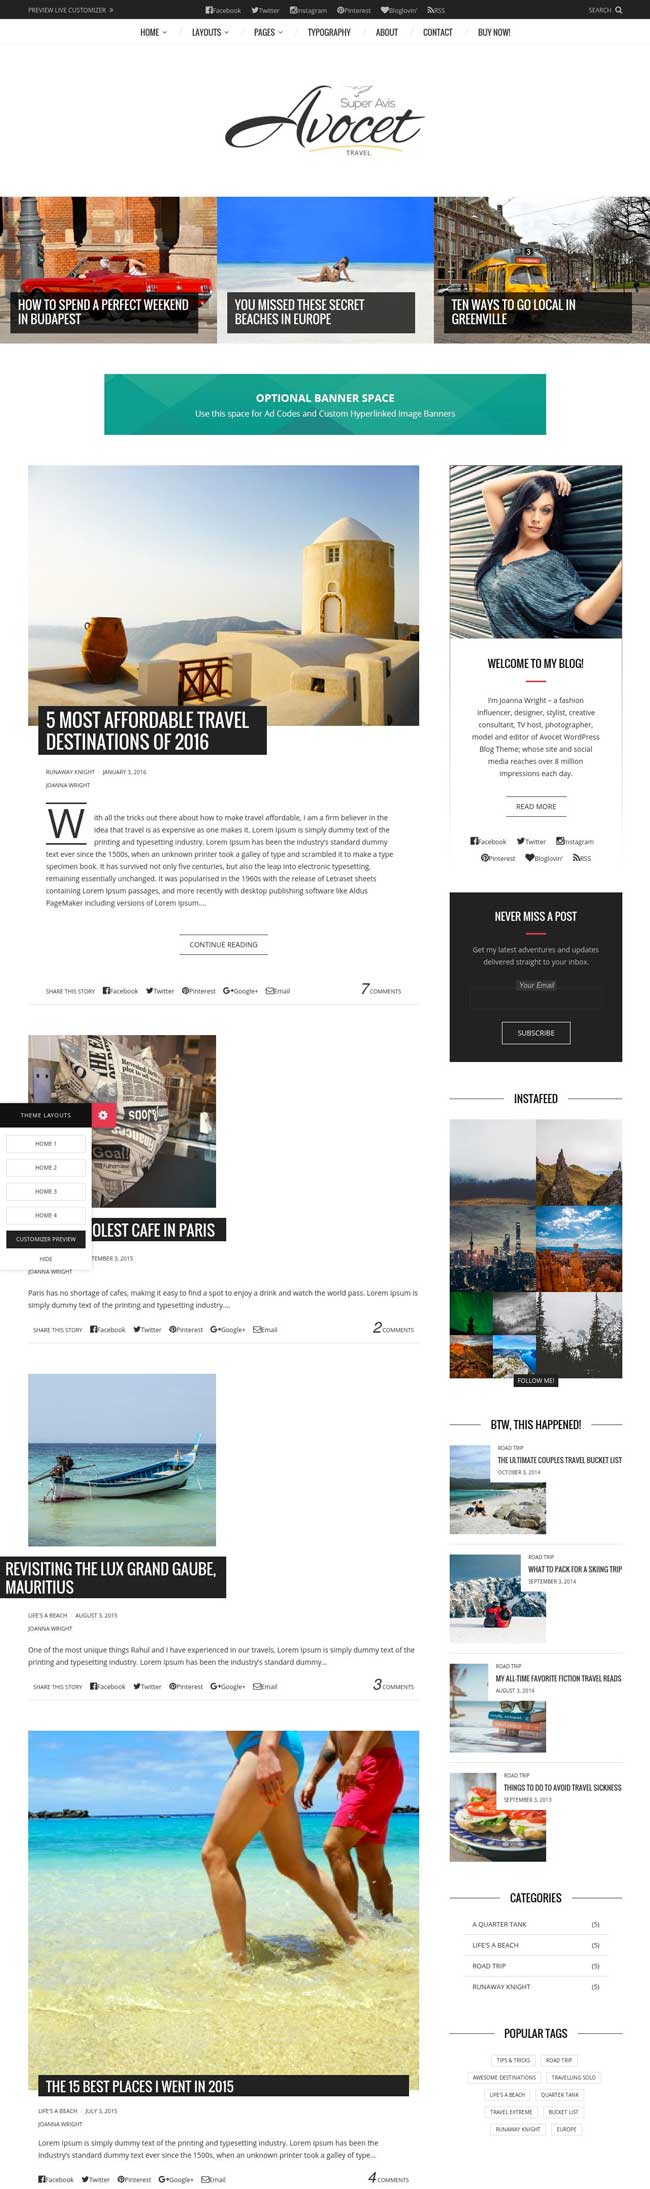 Avocet-Food,-Fashion-and-Travel-WordPress-Blog-Theme